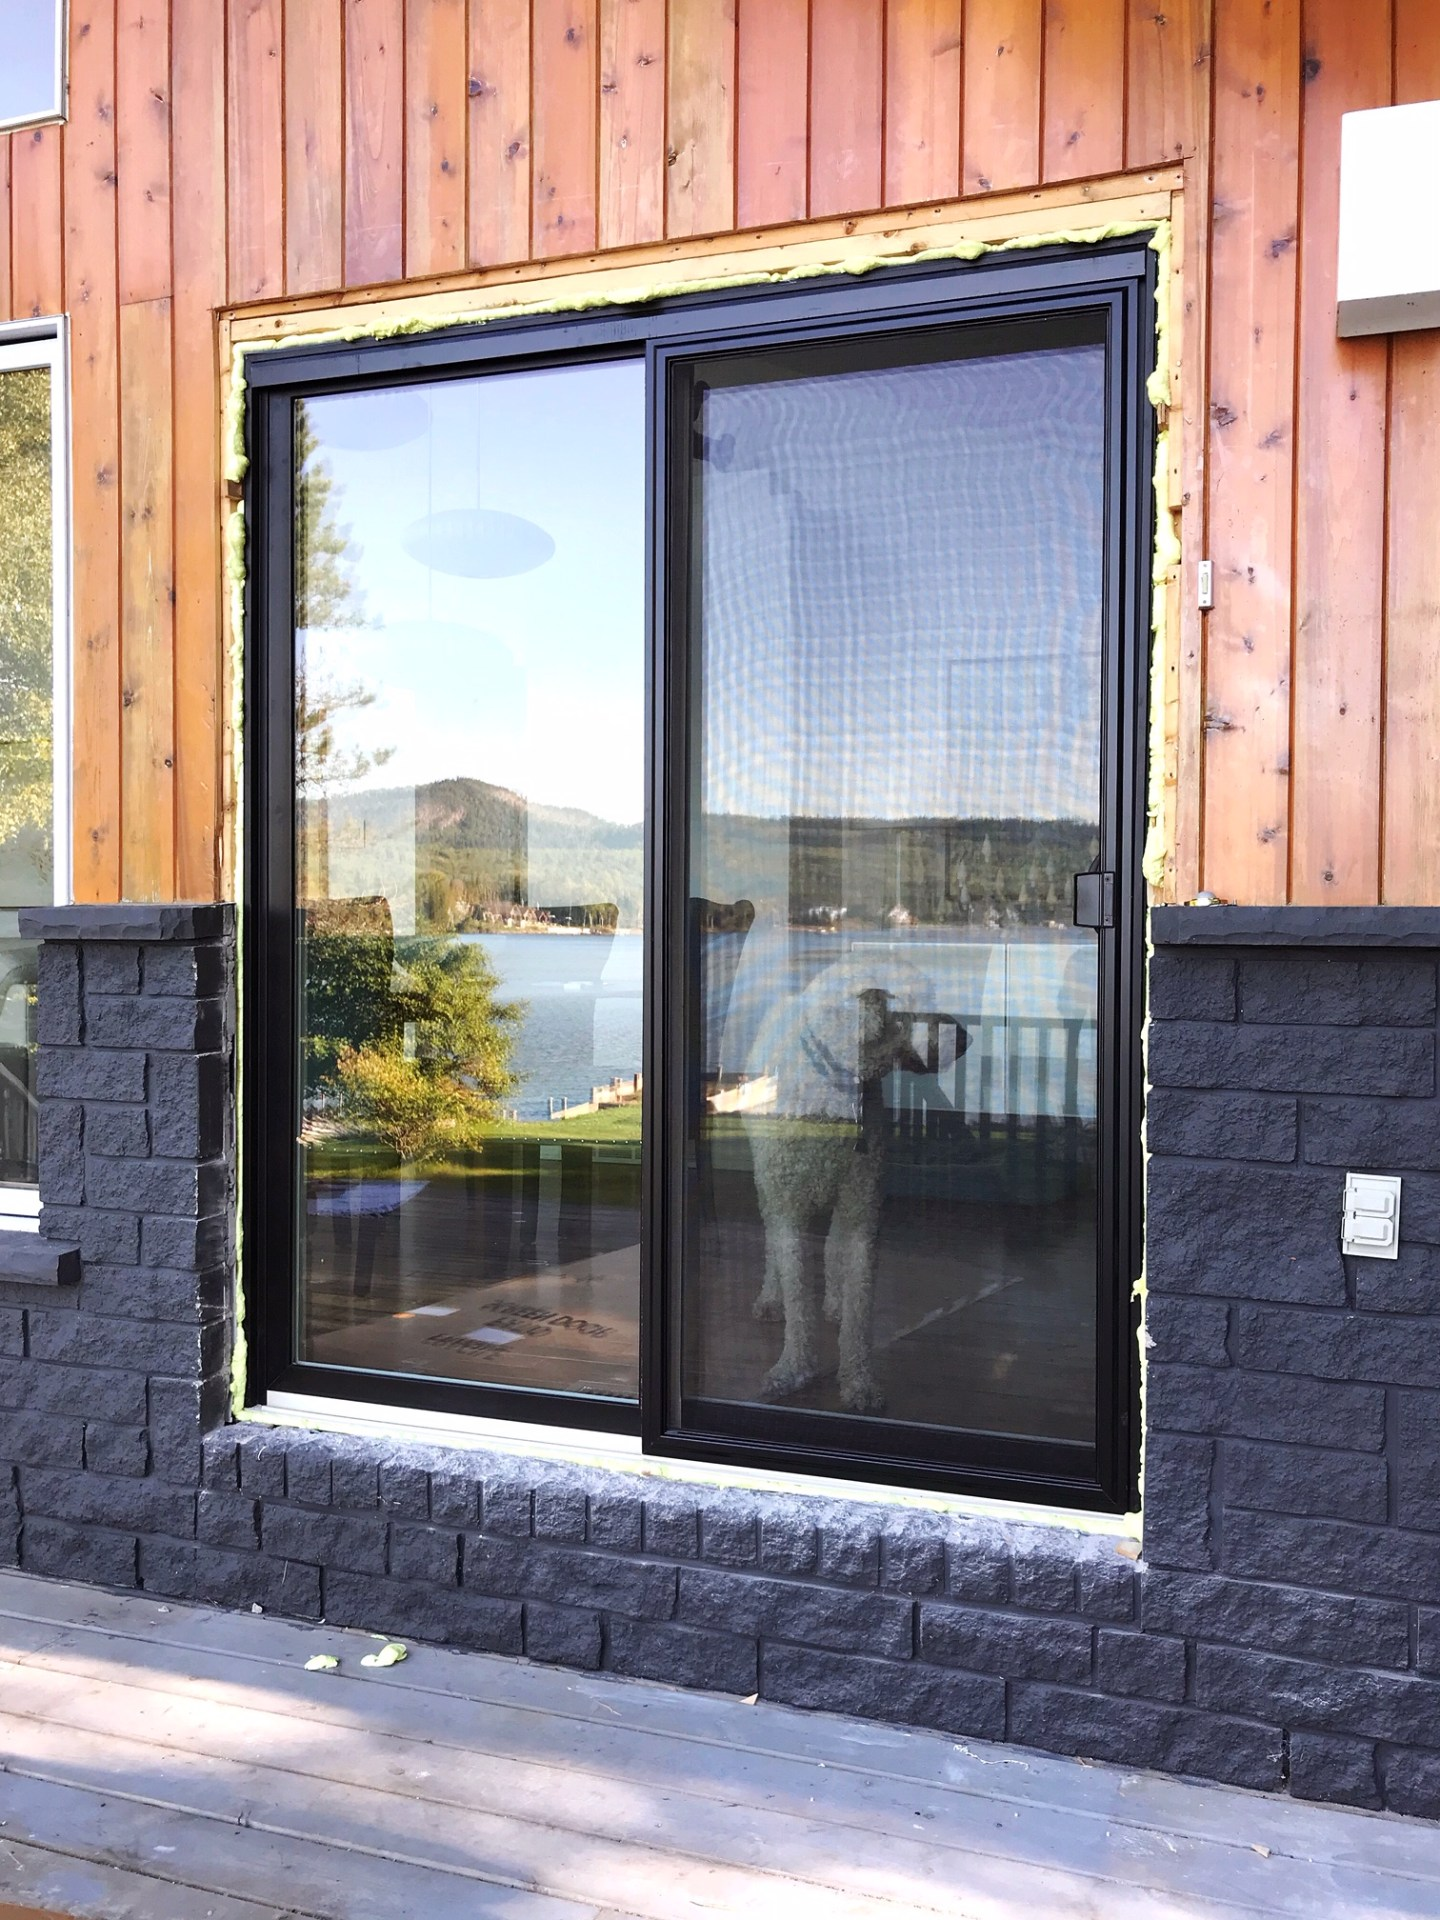 Why We Hate Our Marvin Integrity Sliding Door, Why We Changed Our Patio Doors + Why I Now Think Garden Doors Are Better Than Sliding Patio Doors